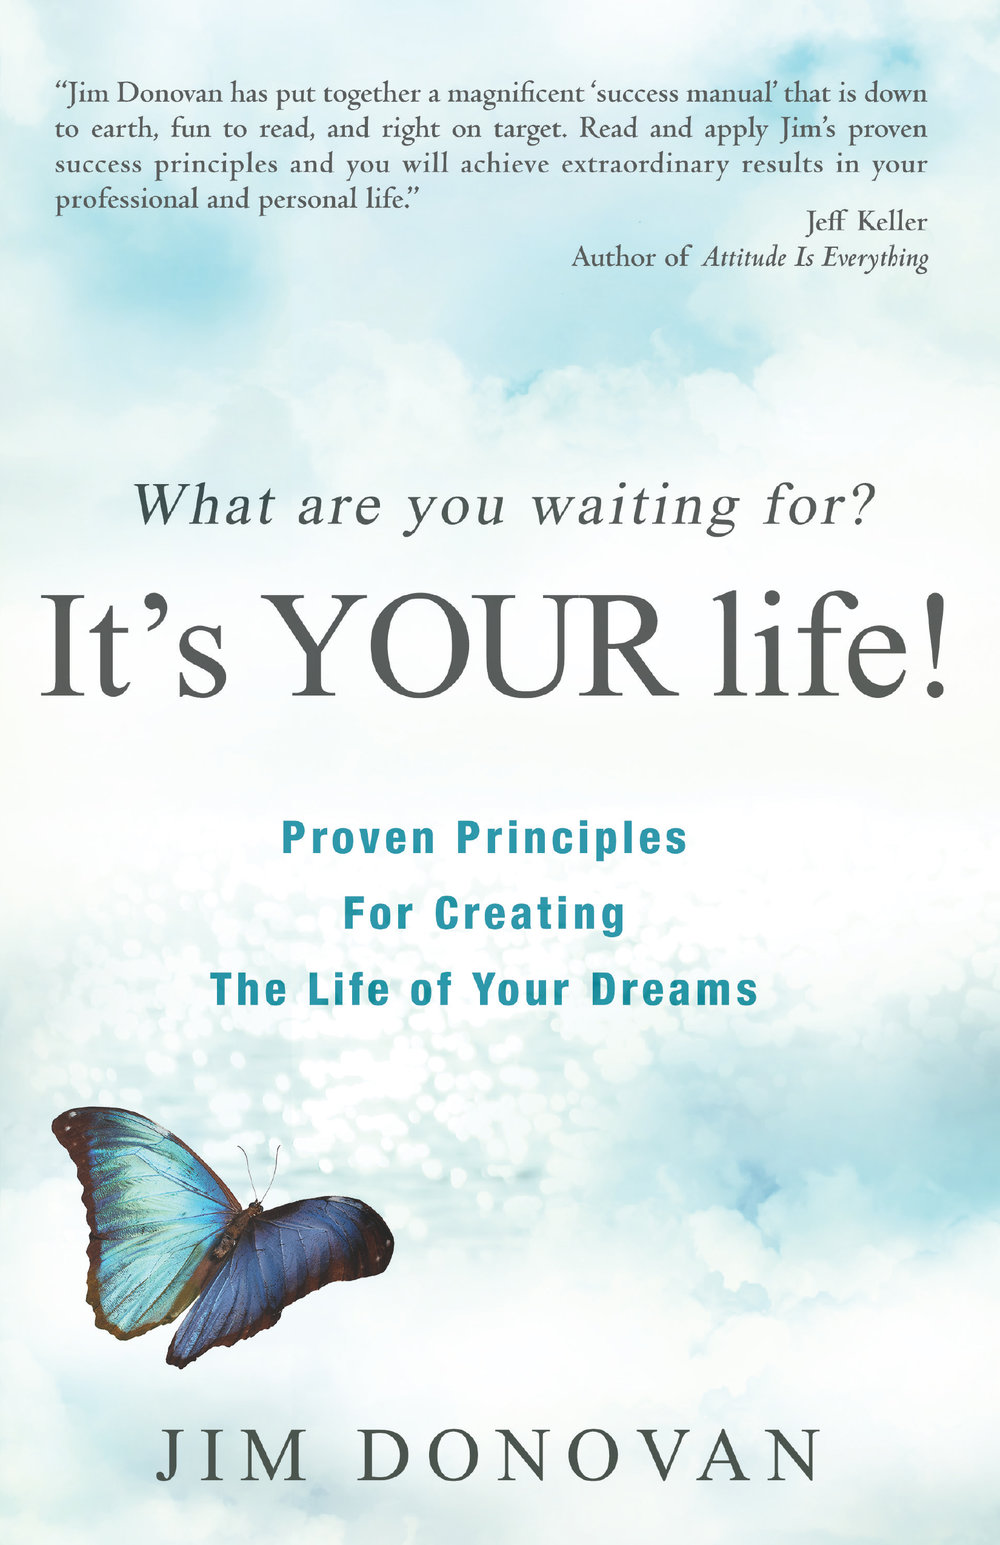 What Are You Waiting For? - Jim Donovan